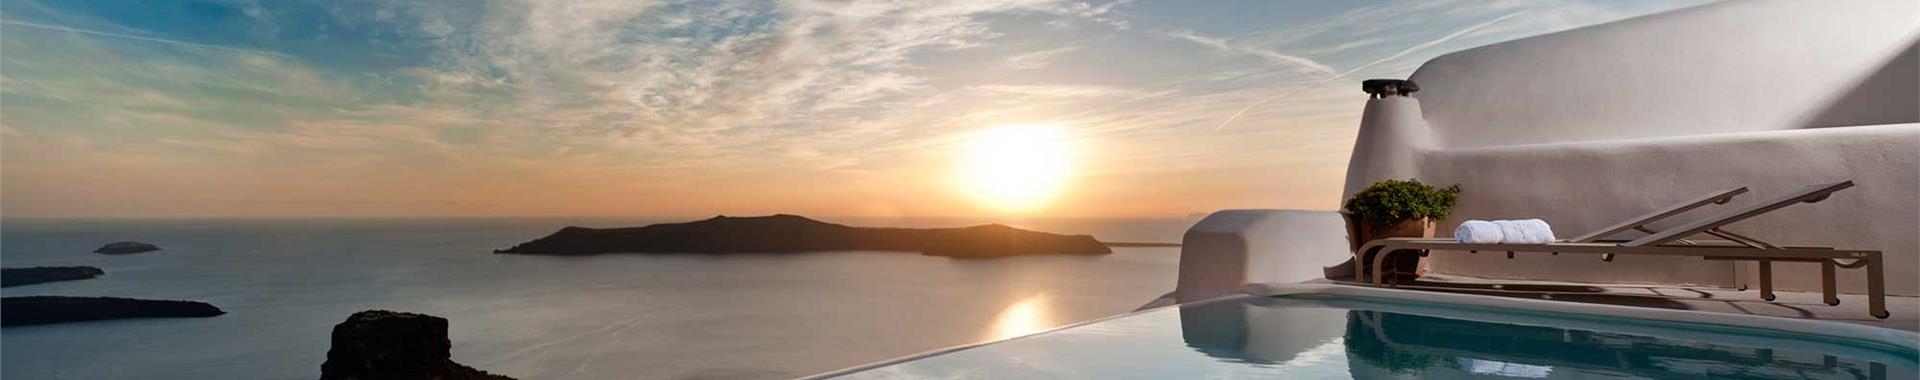 Kamari or Exo Gonia Santorini Honeymoon Hotels